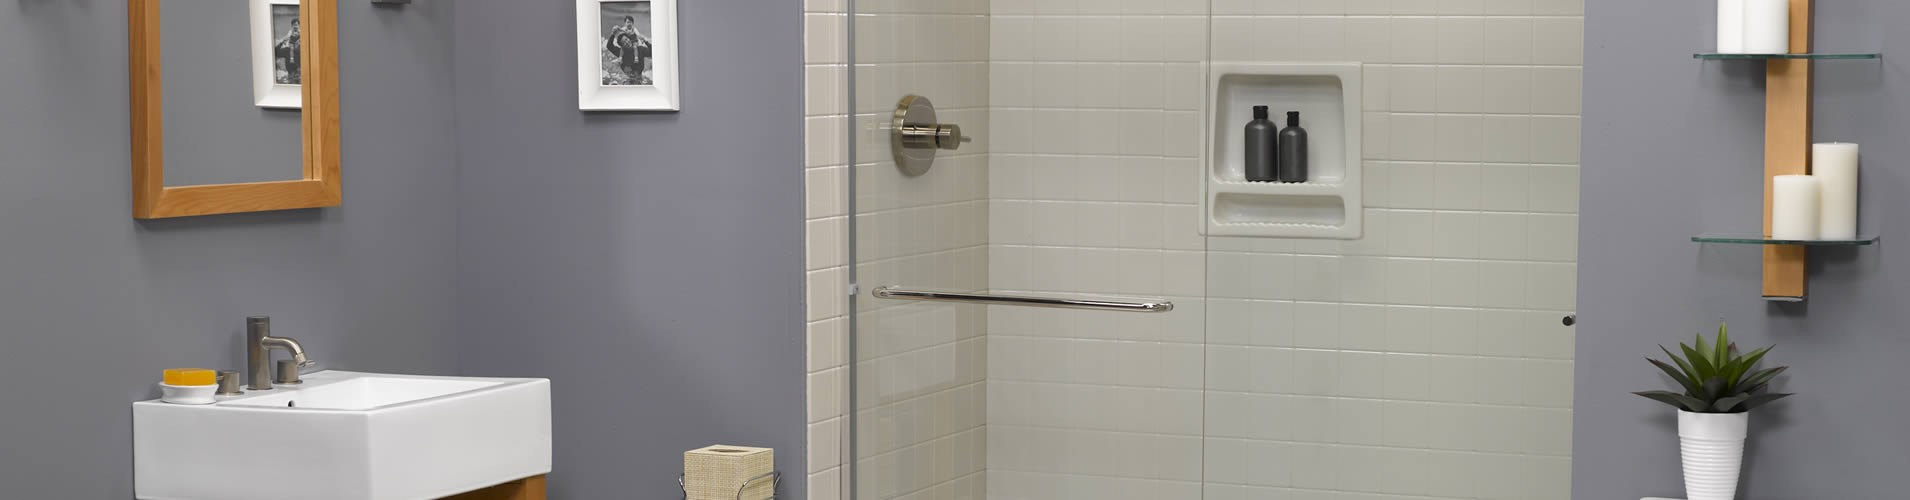 Shower Facts & Questions